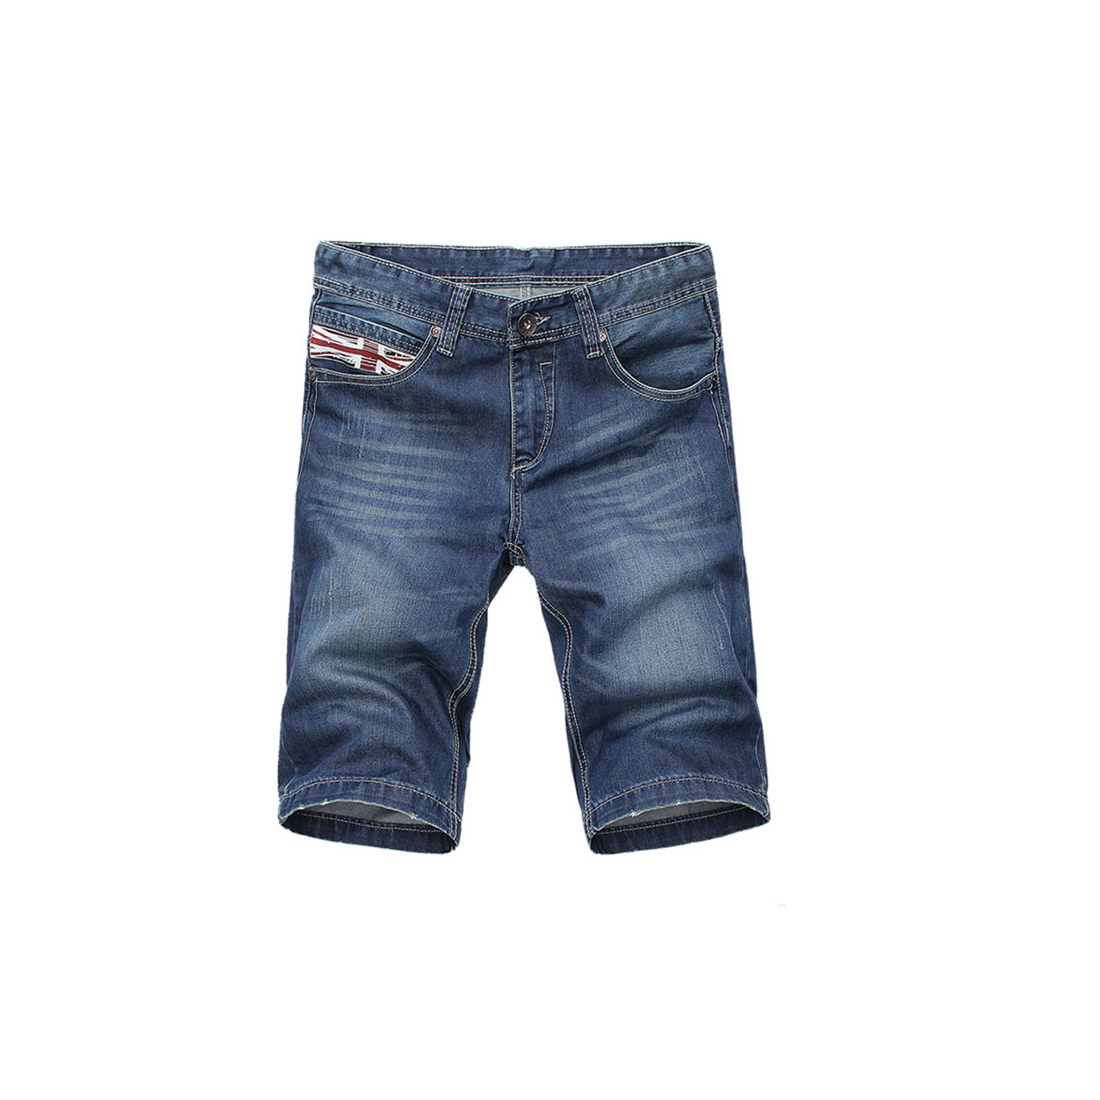 Men Hip Pockets Straight Leg Zip Fly Jean Style Denim Blue Shorts W34